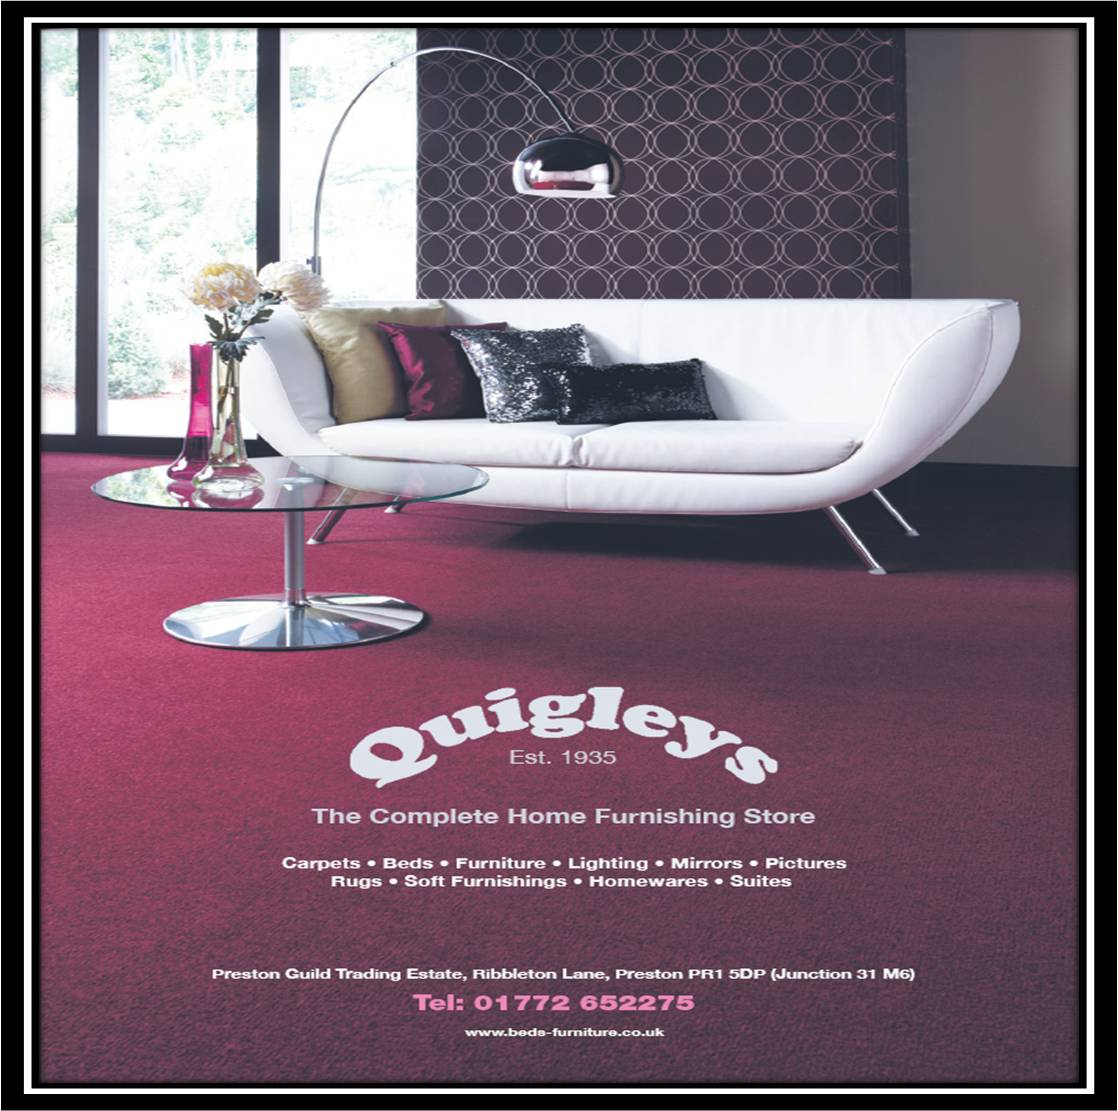 Leather Sofas Preston Lancashire: QUIGLEYS QUALITY BEDS AND FURNITURE SUPERSTORE